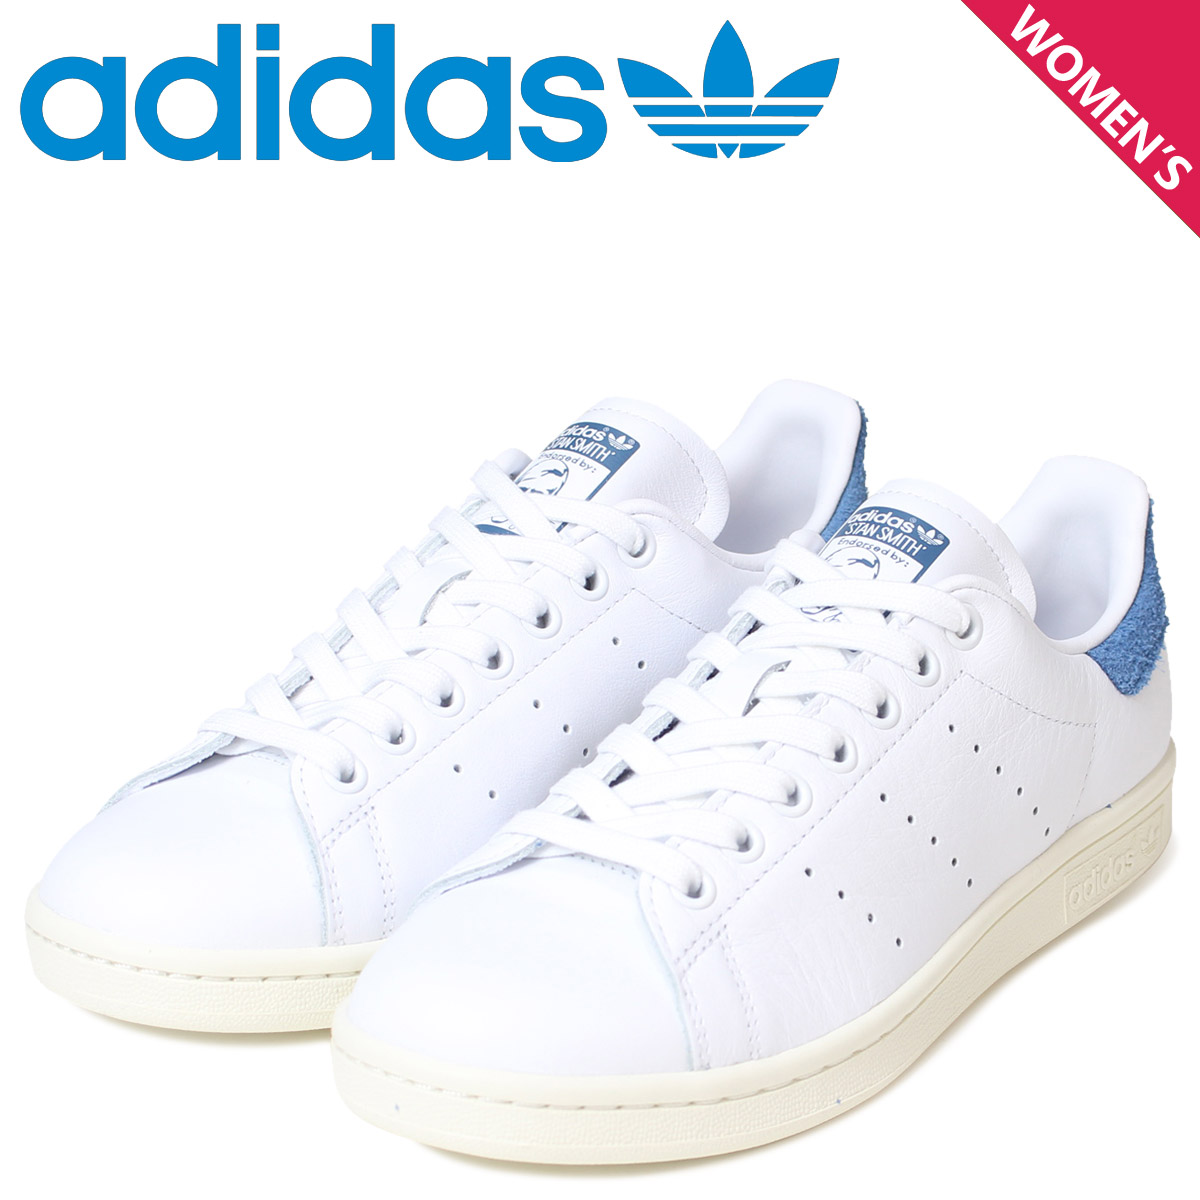 ALLSPORTS: adidas Originals Stan Smith Lady's sneakers